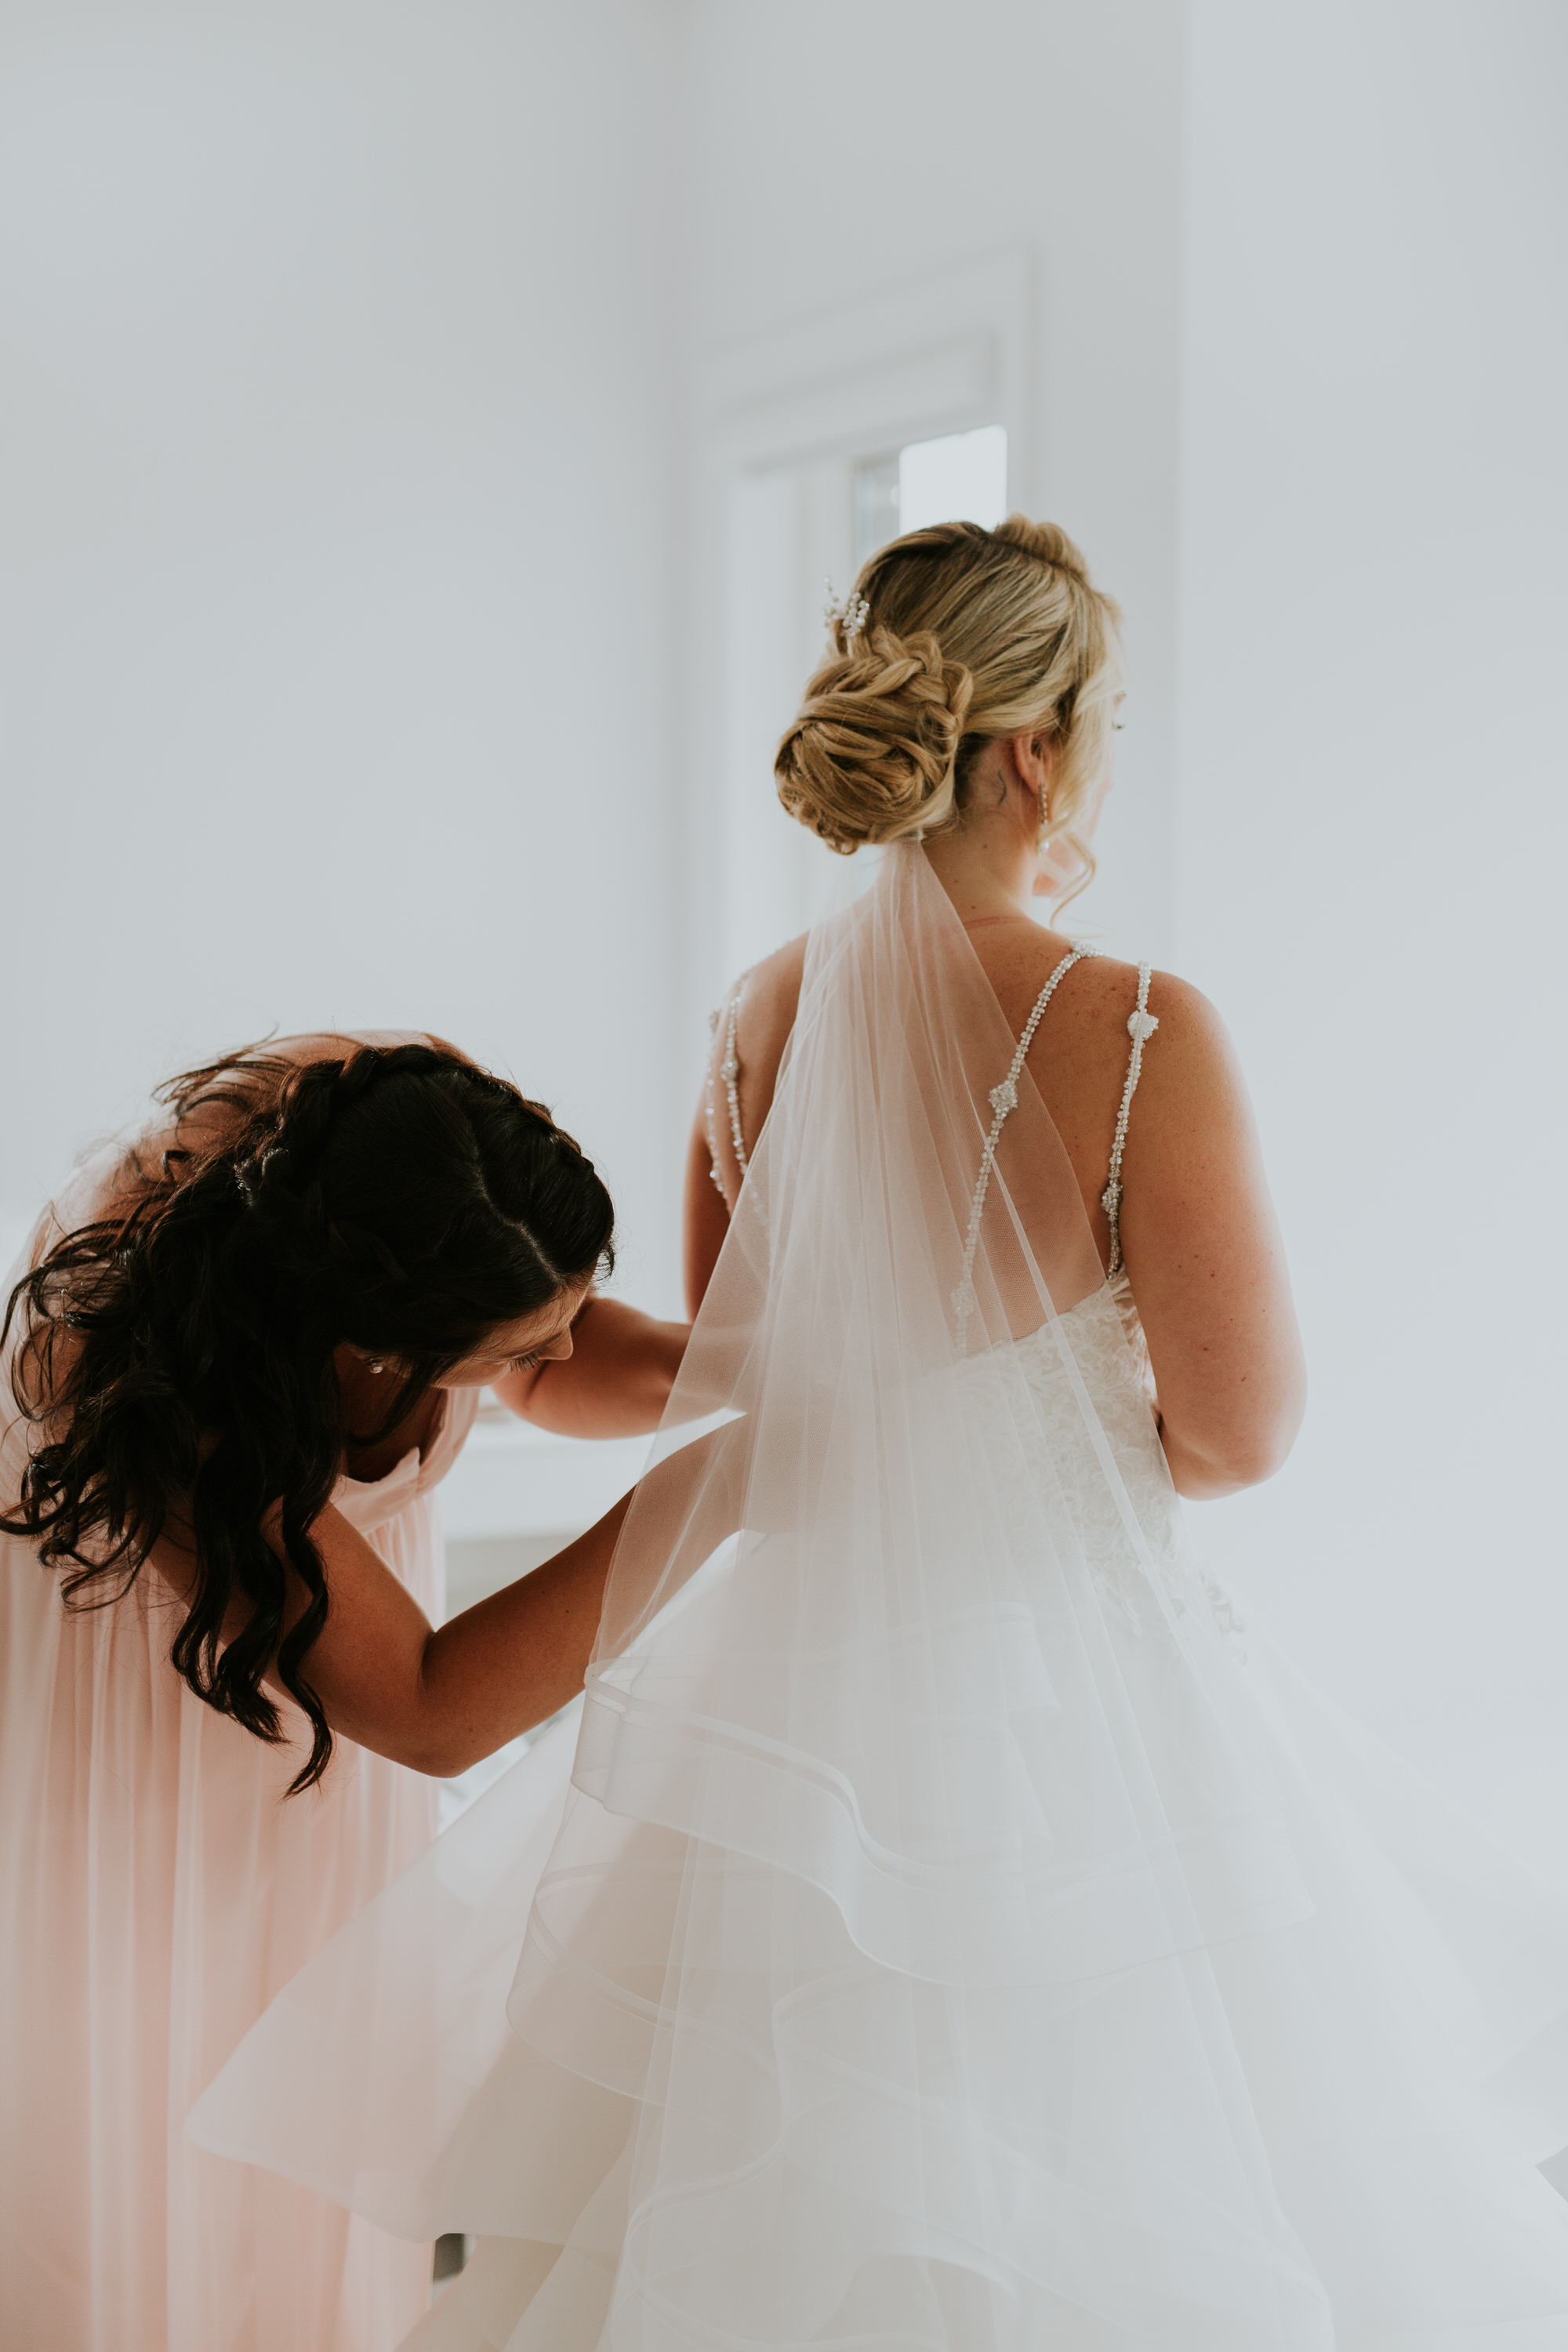 Elmhirst Resort Wedding - Bride prep